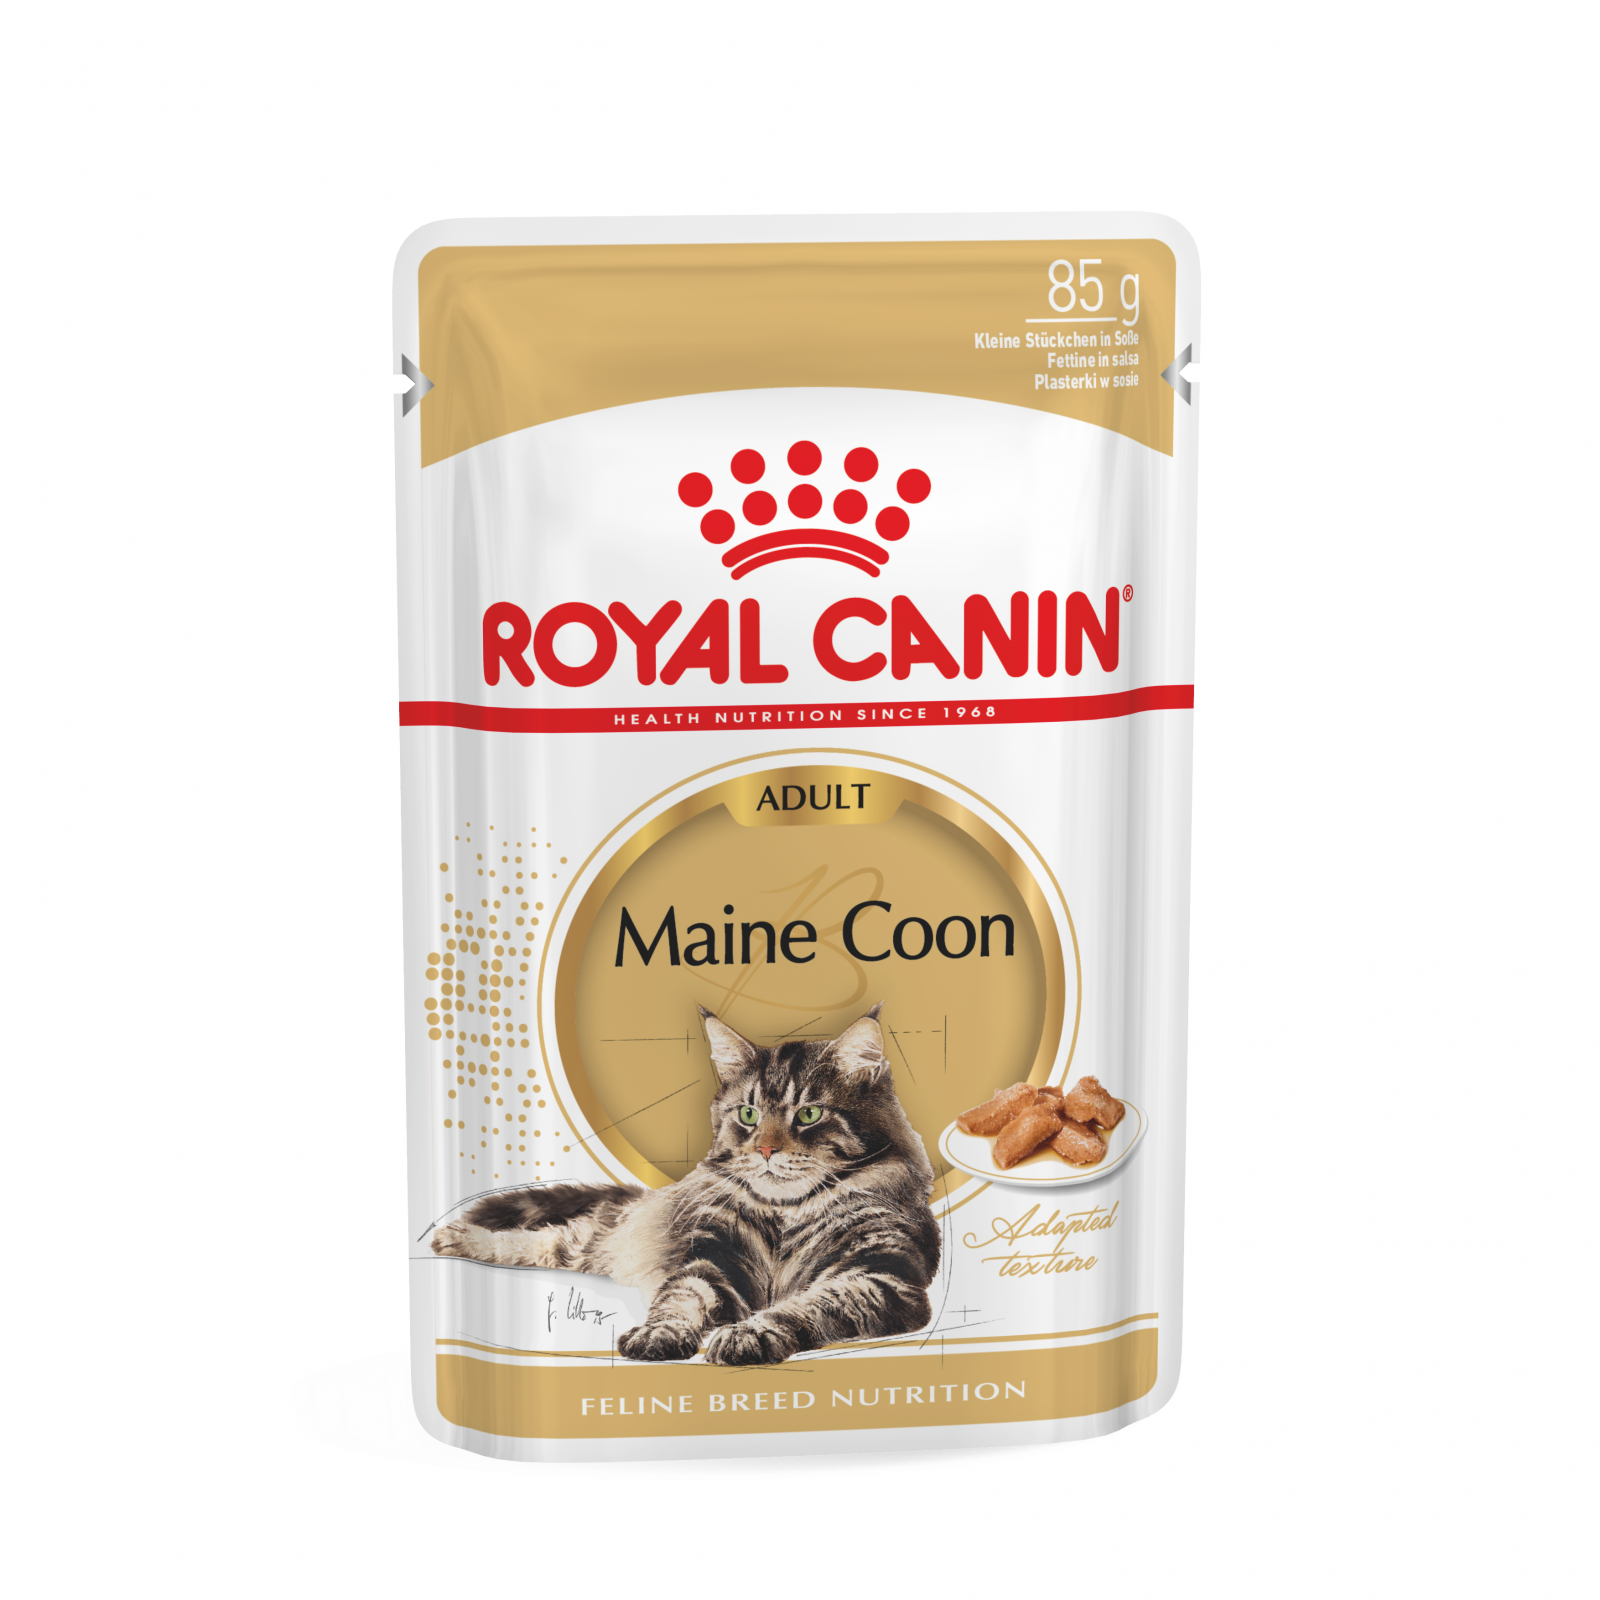 Royal Canin Royal Canin Maine Coon Gravy 85g